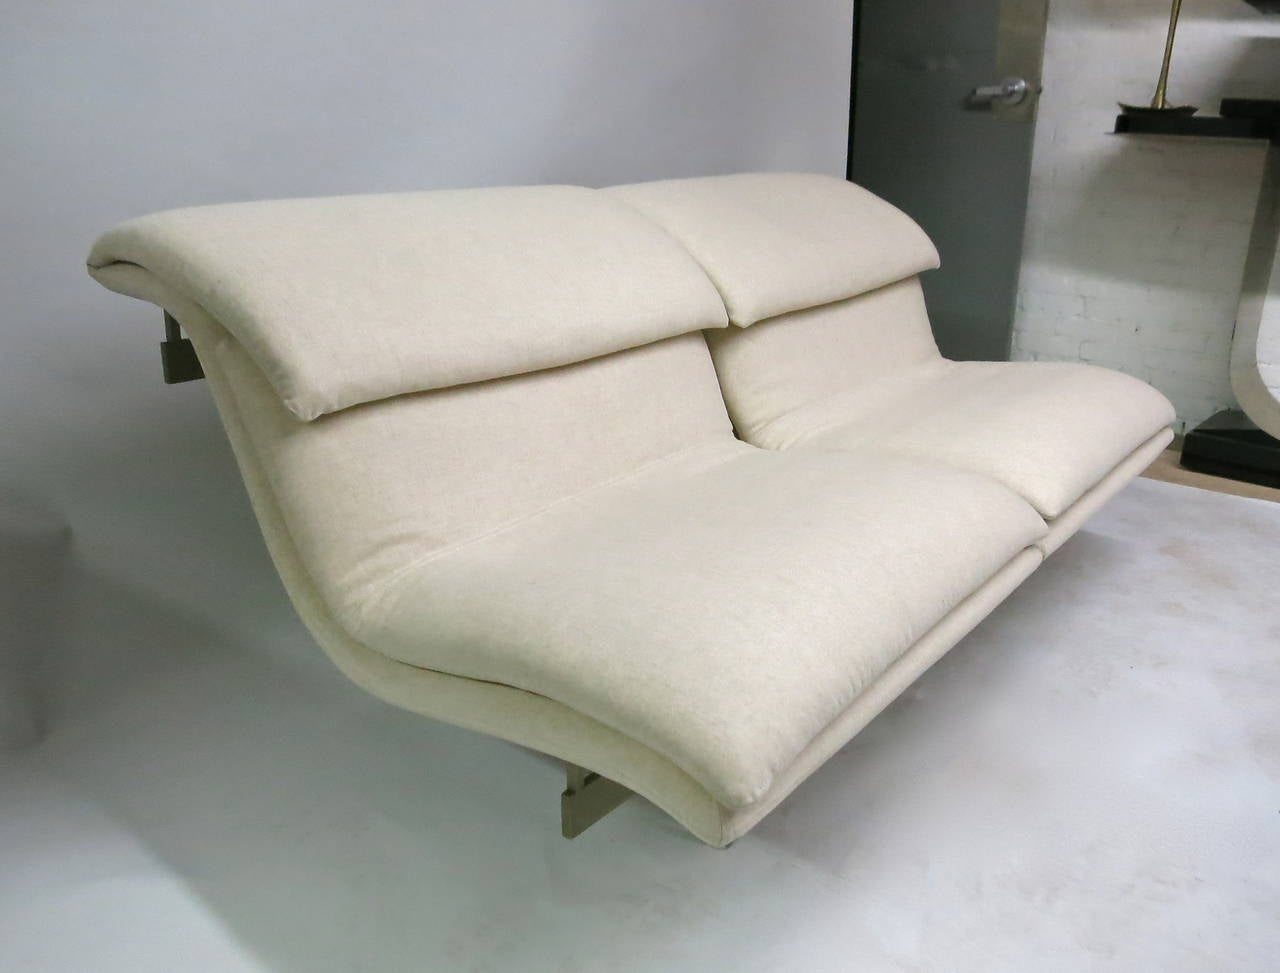 Mid-Century Modern Pair of Two-Seater Sofas by Saporiti Fabricated by Saporiti Italia, Circa 1970 For Sale